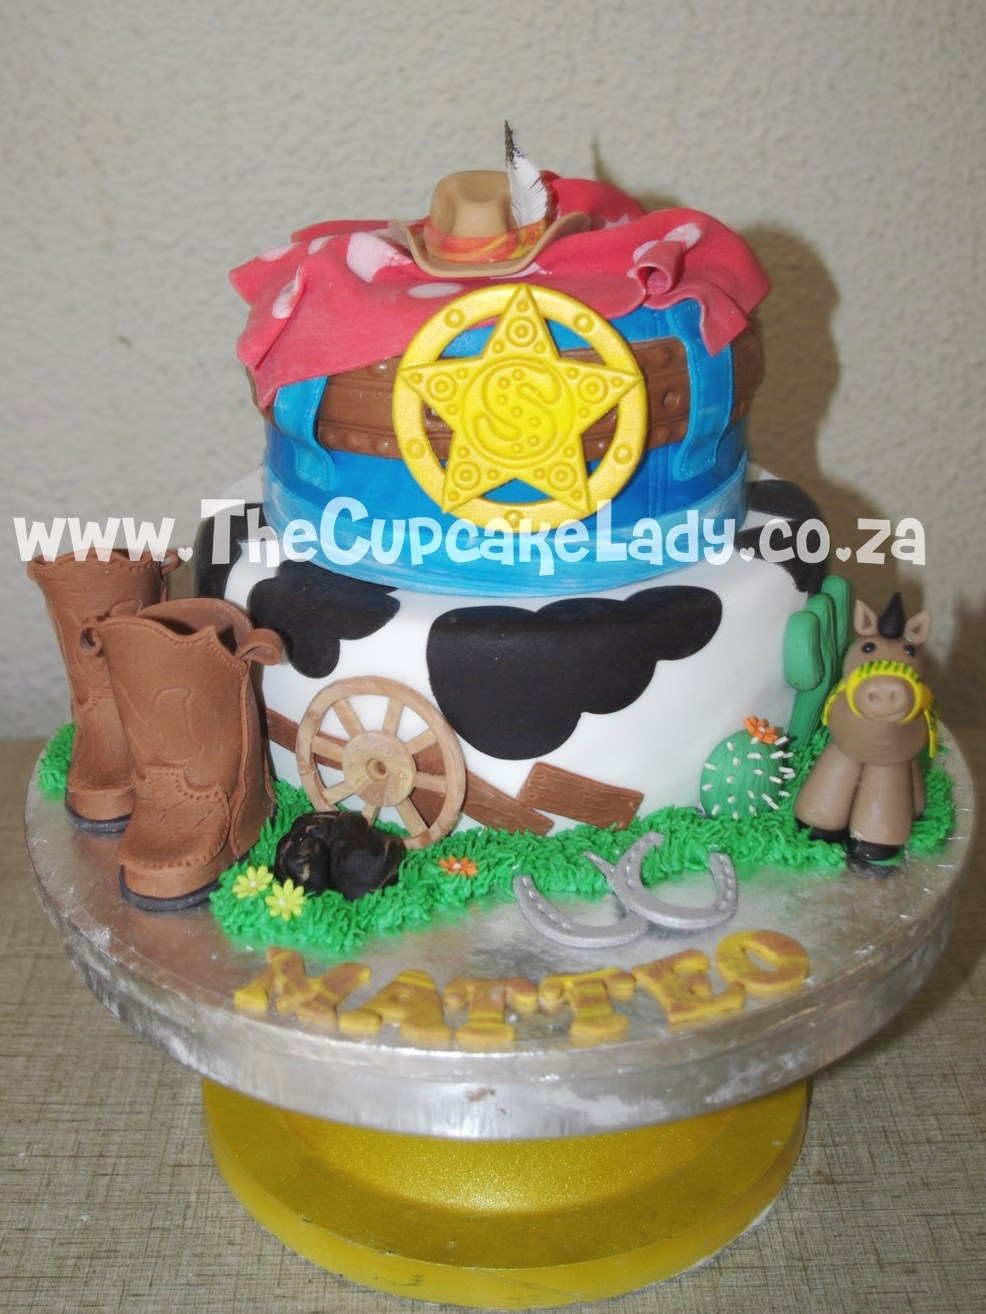 cowboy theme, western theme, two tier cake, birthday cake, custom made sugar paste fondant decorations - bandana, stetson, pony, boots, wagon wheel, sheriff badge buckle, horseshoes, cactii